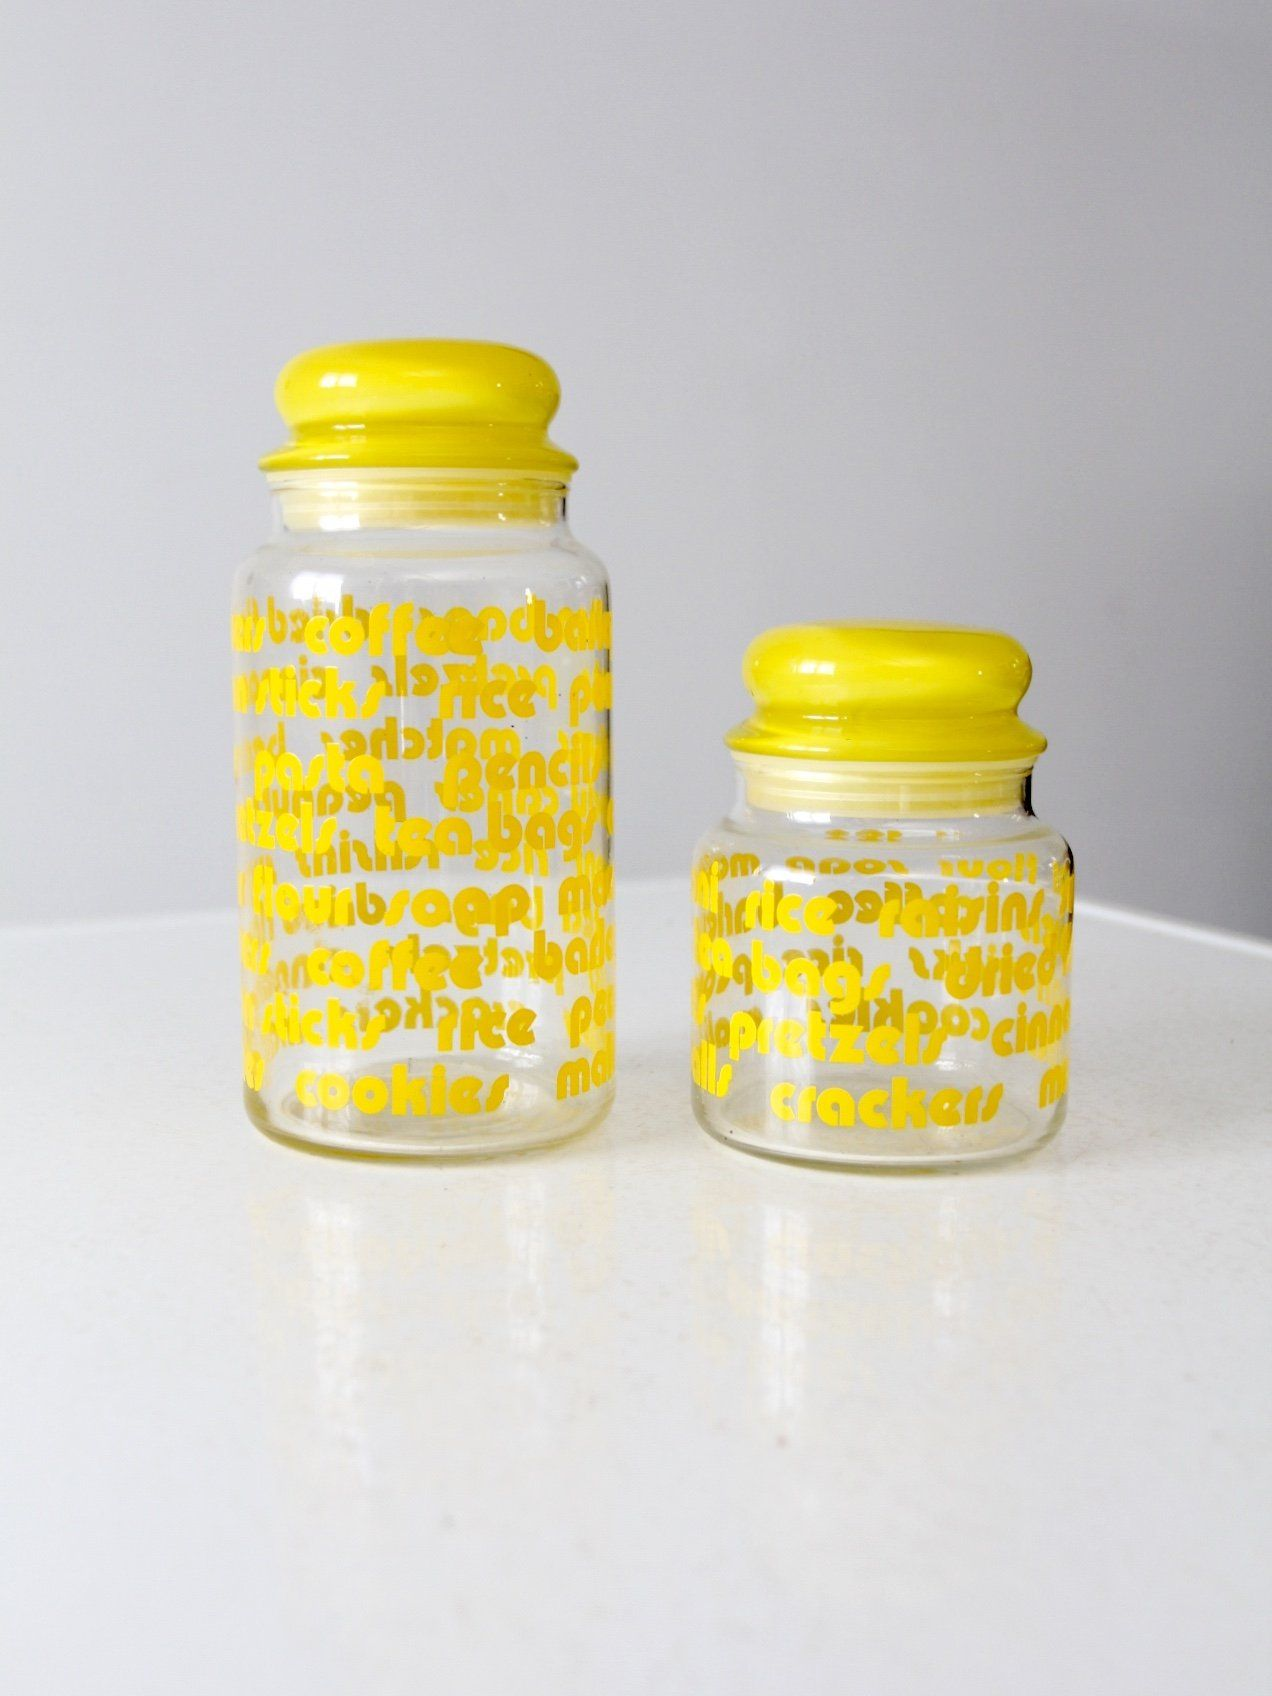 Kitchen canisters glass  Vintage mod glass kitchen canisters set of   Pinterest  Kitchen